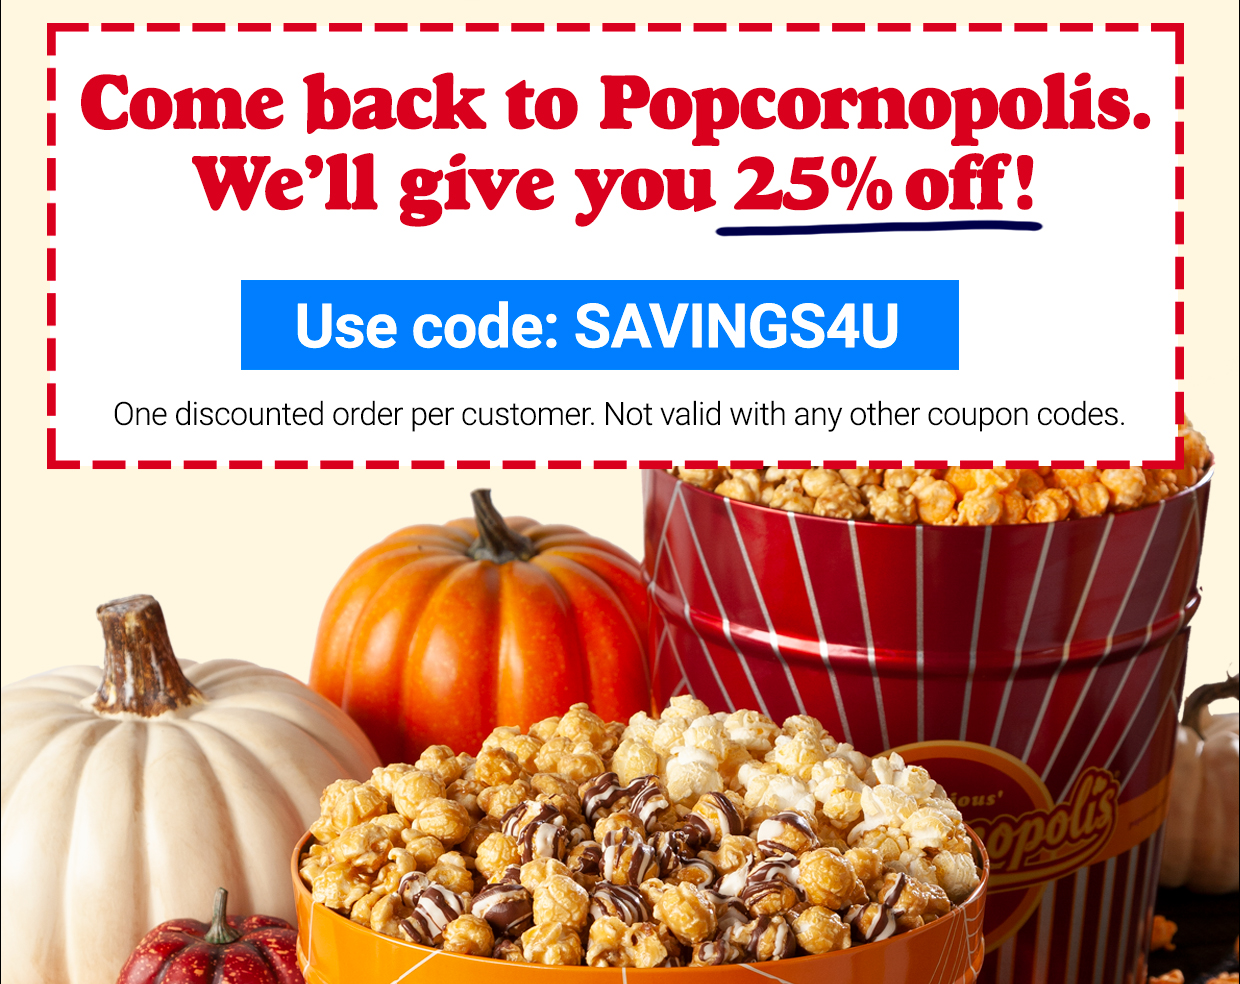 Coupon Code: SAVINGS4U